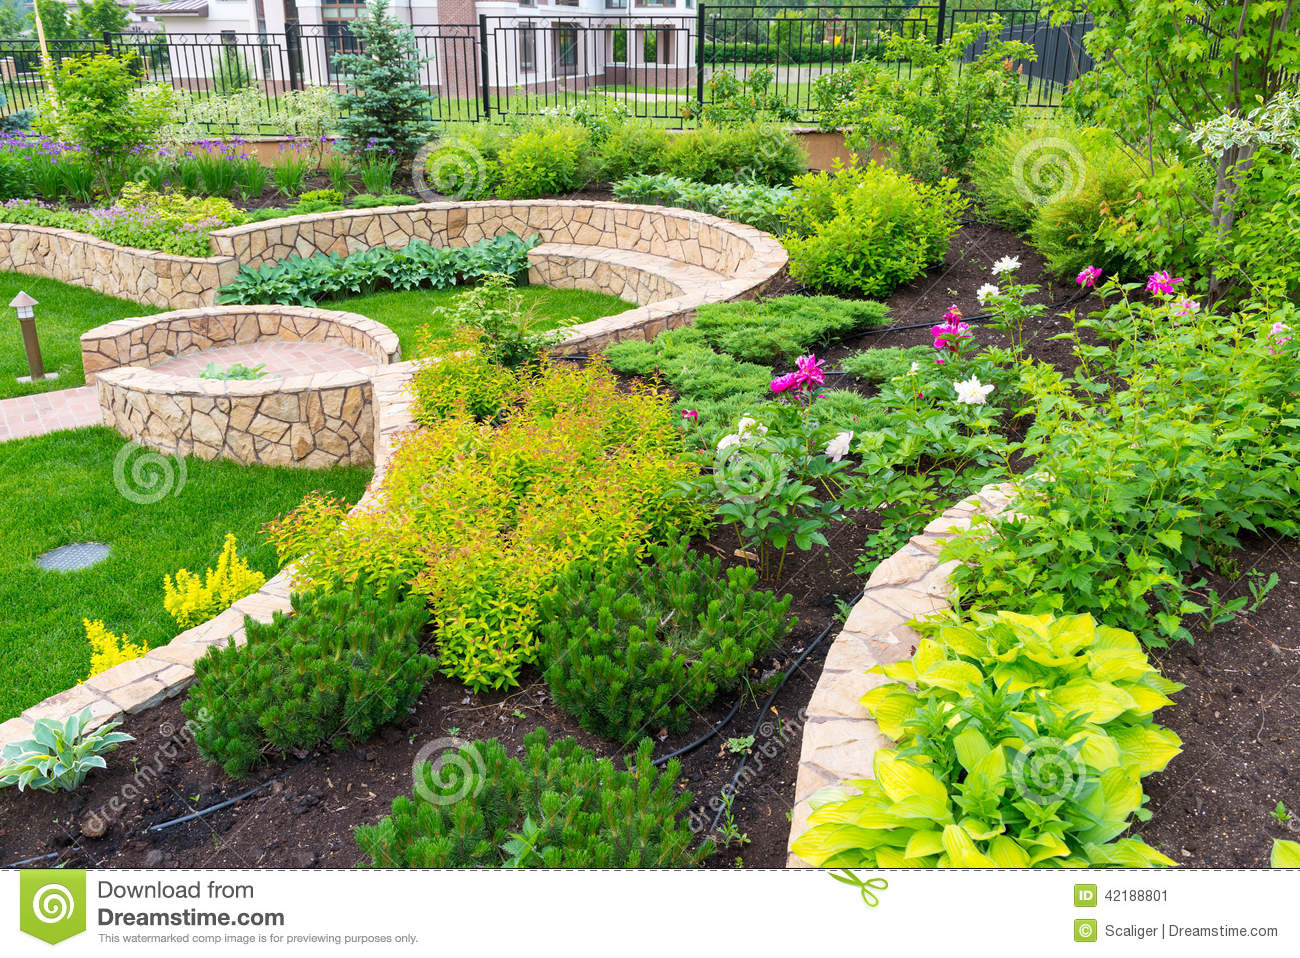 Natural landscaping in home garden stock image image for Garden landscape photos